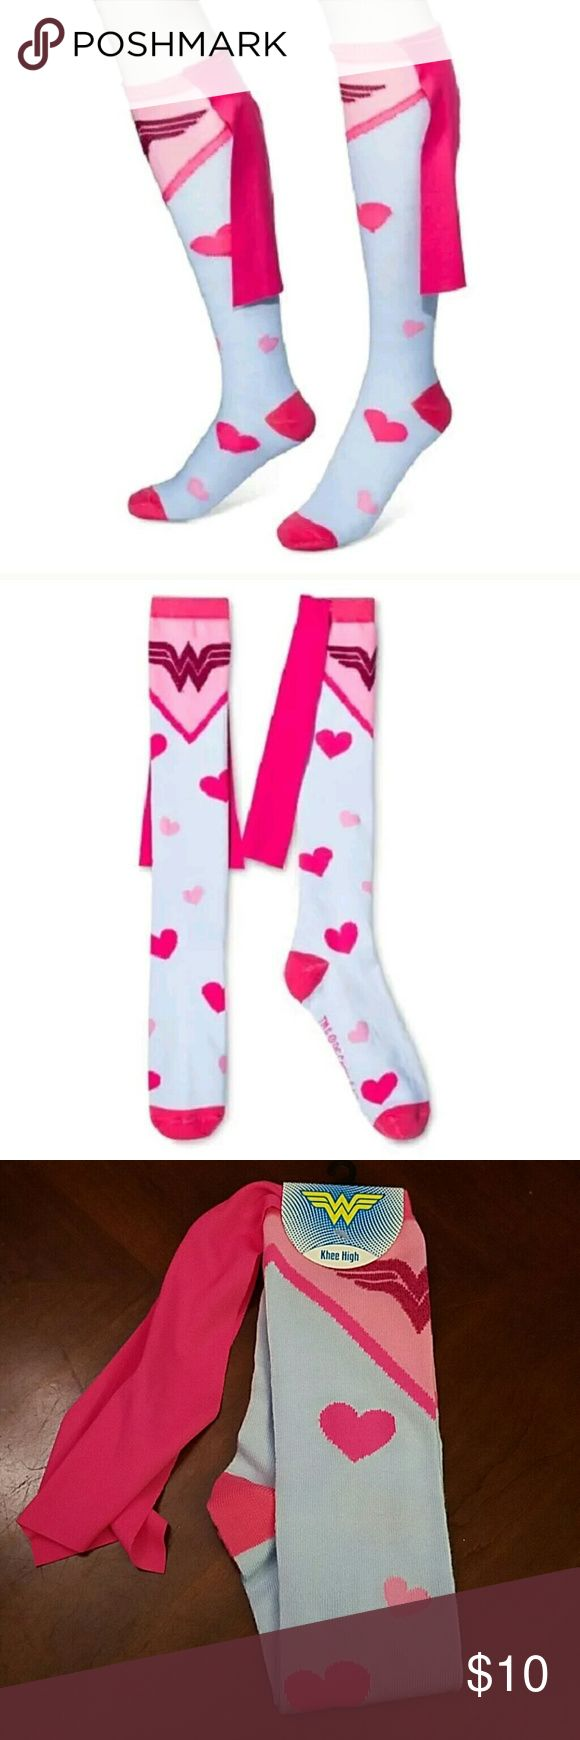 DC Wonder Woman Superhero Hearts Knee High Socks BRAND NEW! Women's DC Wonder Woman Knee-High Socks - Bioworld Socks  Fits Shoe Sz 5-10   Sock Size 9-11  Style Number - KH4T4LDCO00TA00  Ladies Knee-High Socks. These are light blue with pink hearts and Wonder Woman's logo in pink and sparkles. At the top of the socks is a pink cape. Fits ladies shoe size 5 -10. This is new with the factory tag attached.  I also have Women's Marvel Captain America Socks and Women's Marvel Deadpool Socks…